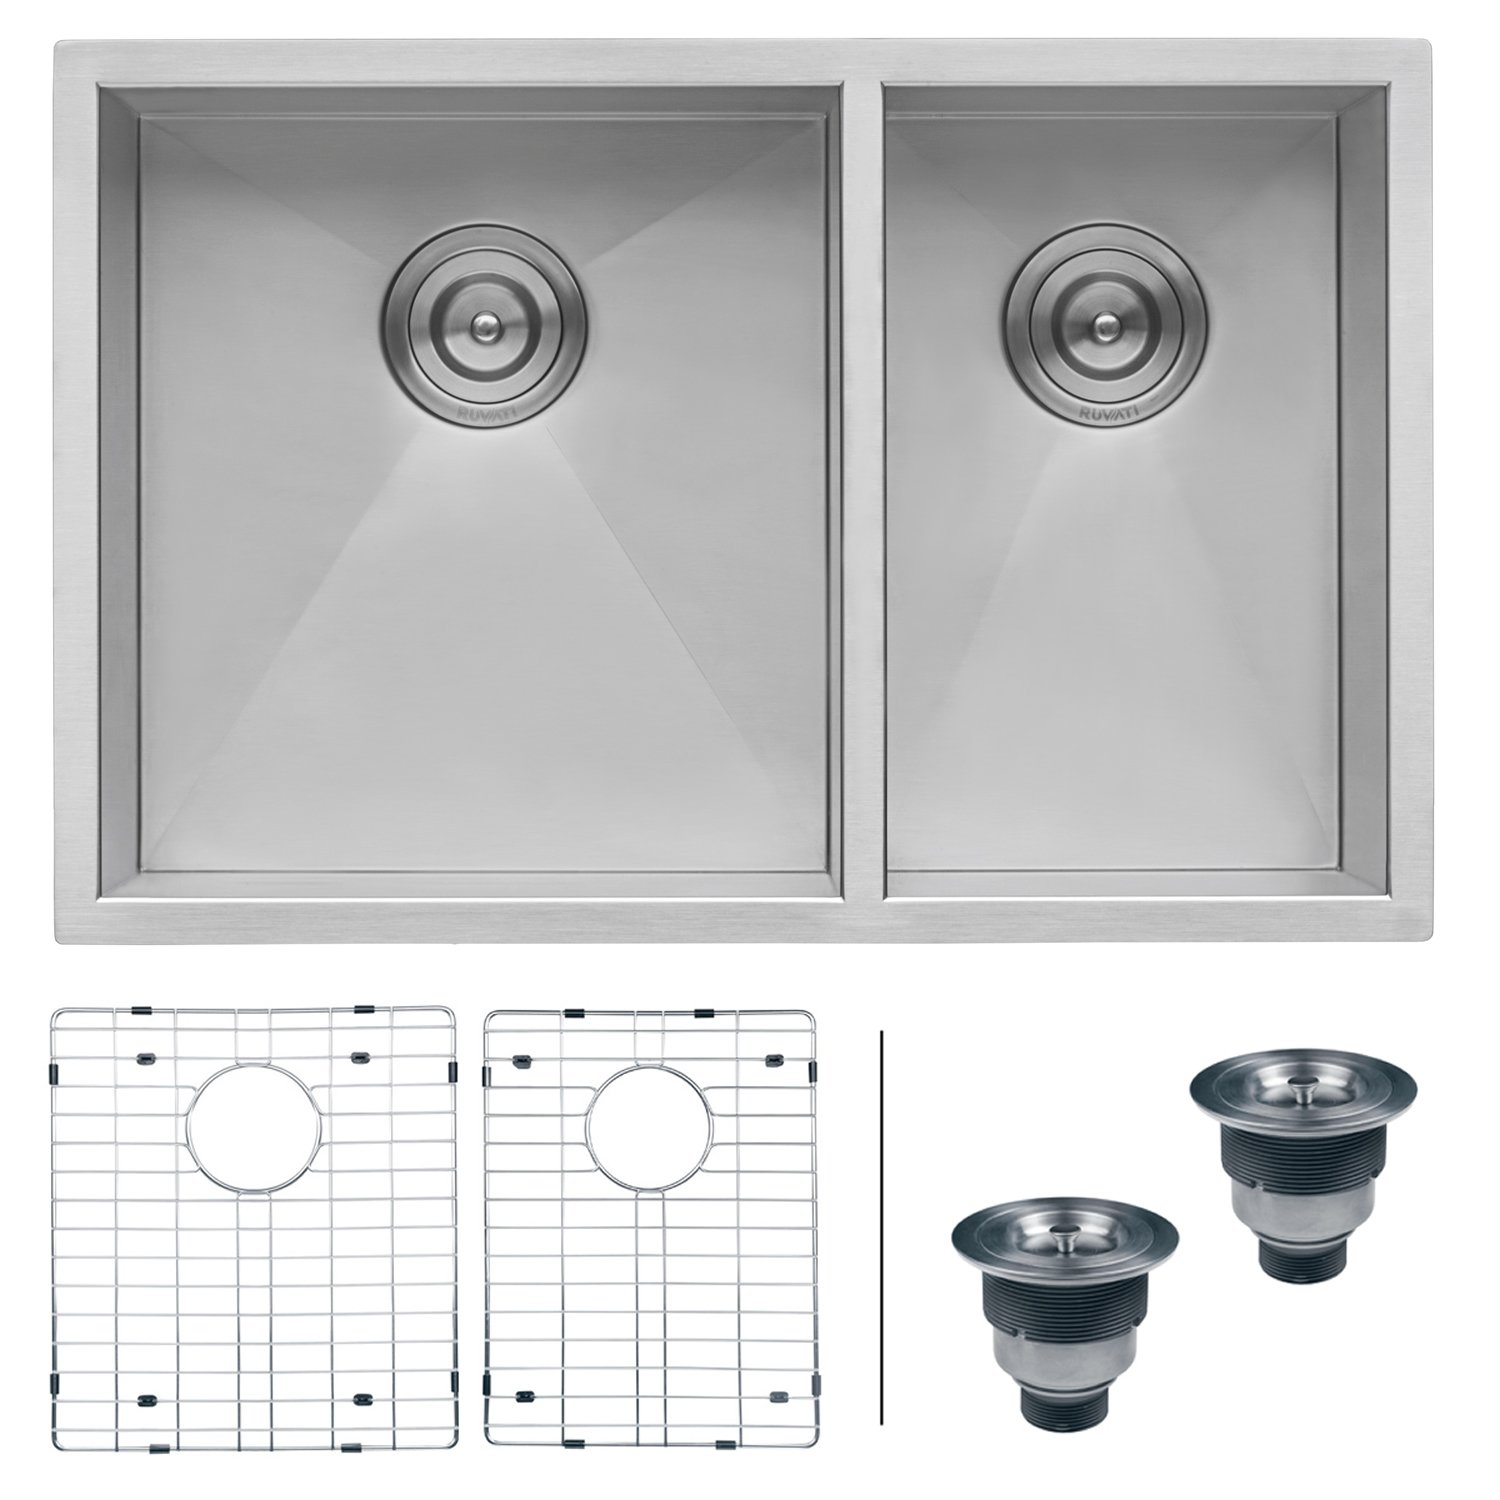 Ruvati 32-inch Undermount 60/40 Double Bowl Zero-Radius 16 Gauge Stainless Steel Kitchen Sink - RVH7515 by Ruvati